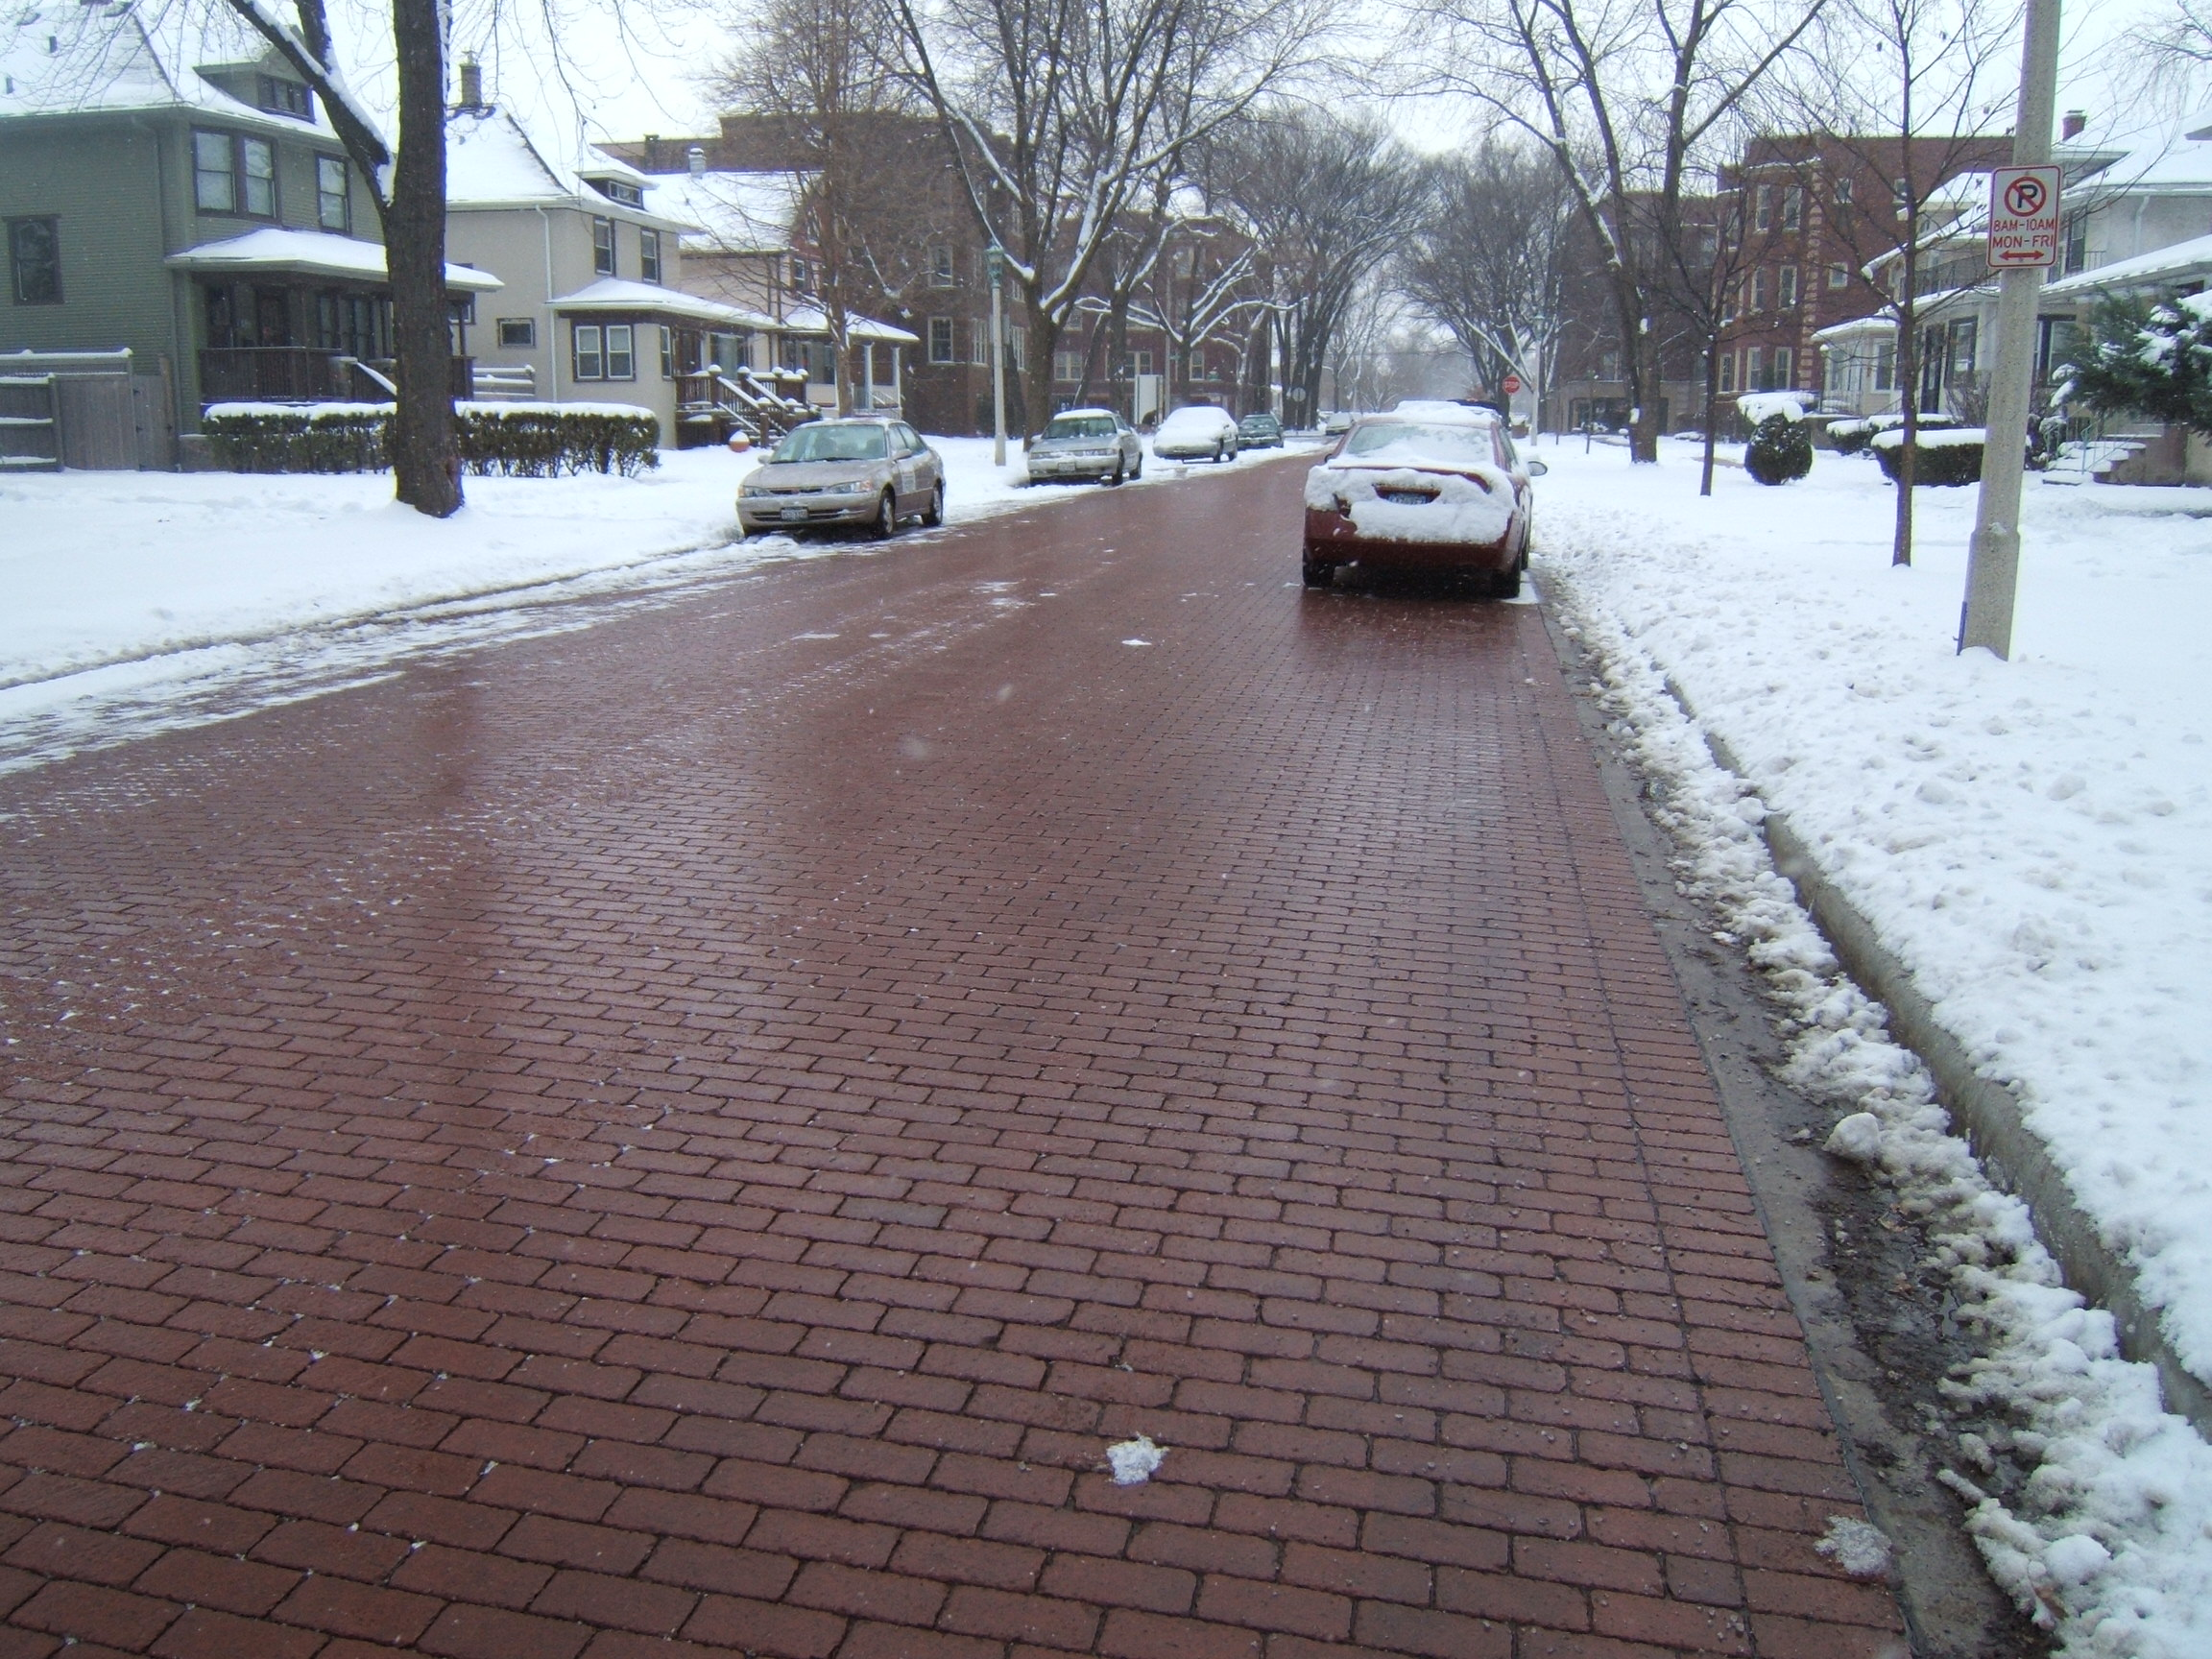 Permeable Pavers Improve Snow And Ice Removal On City